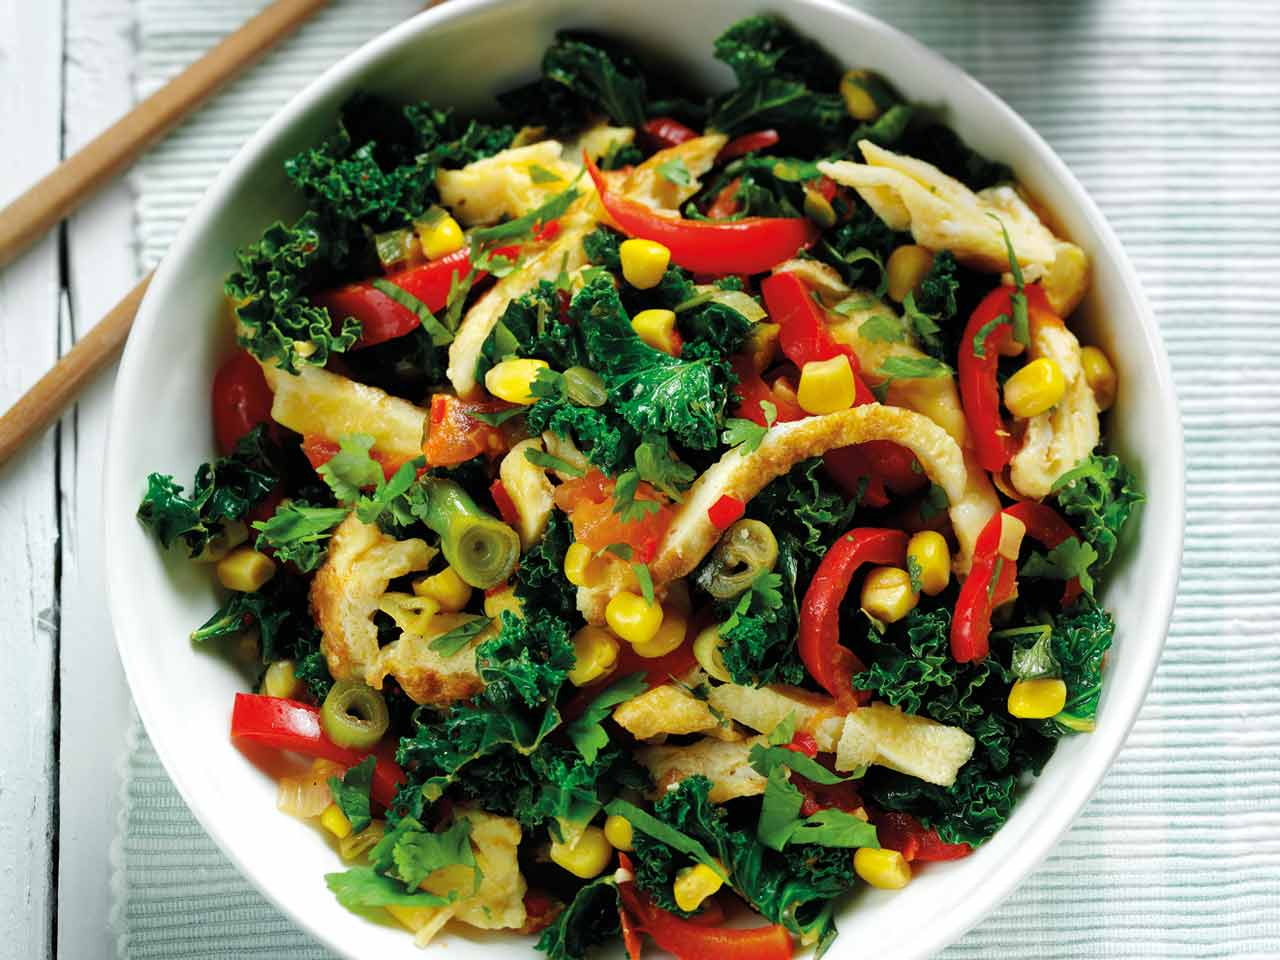 Asian chopped omelette with kale and peppers